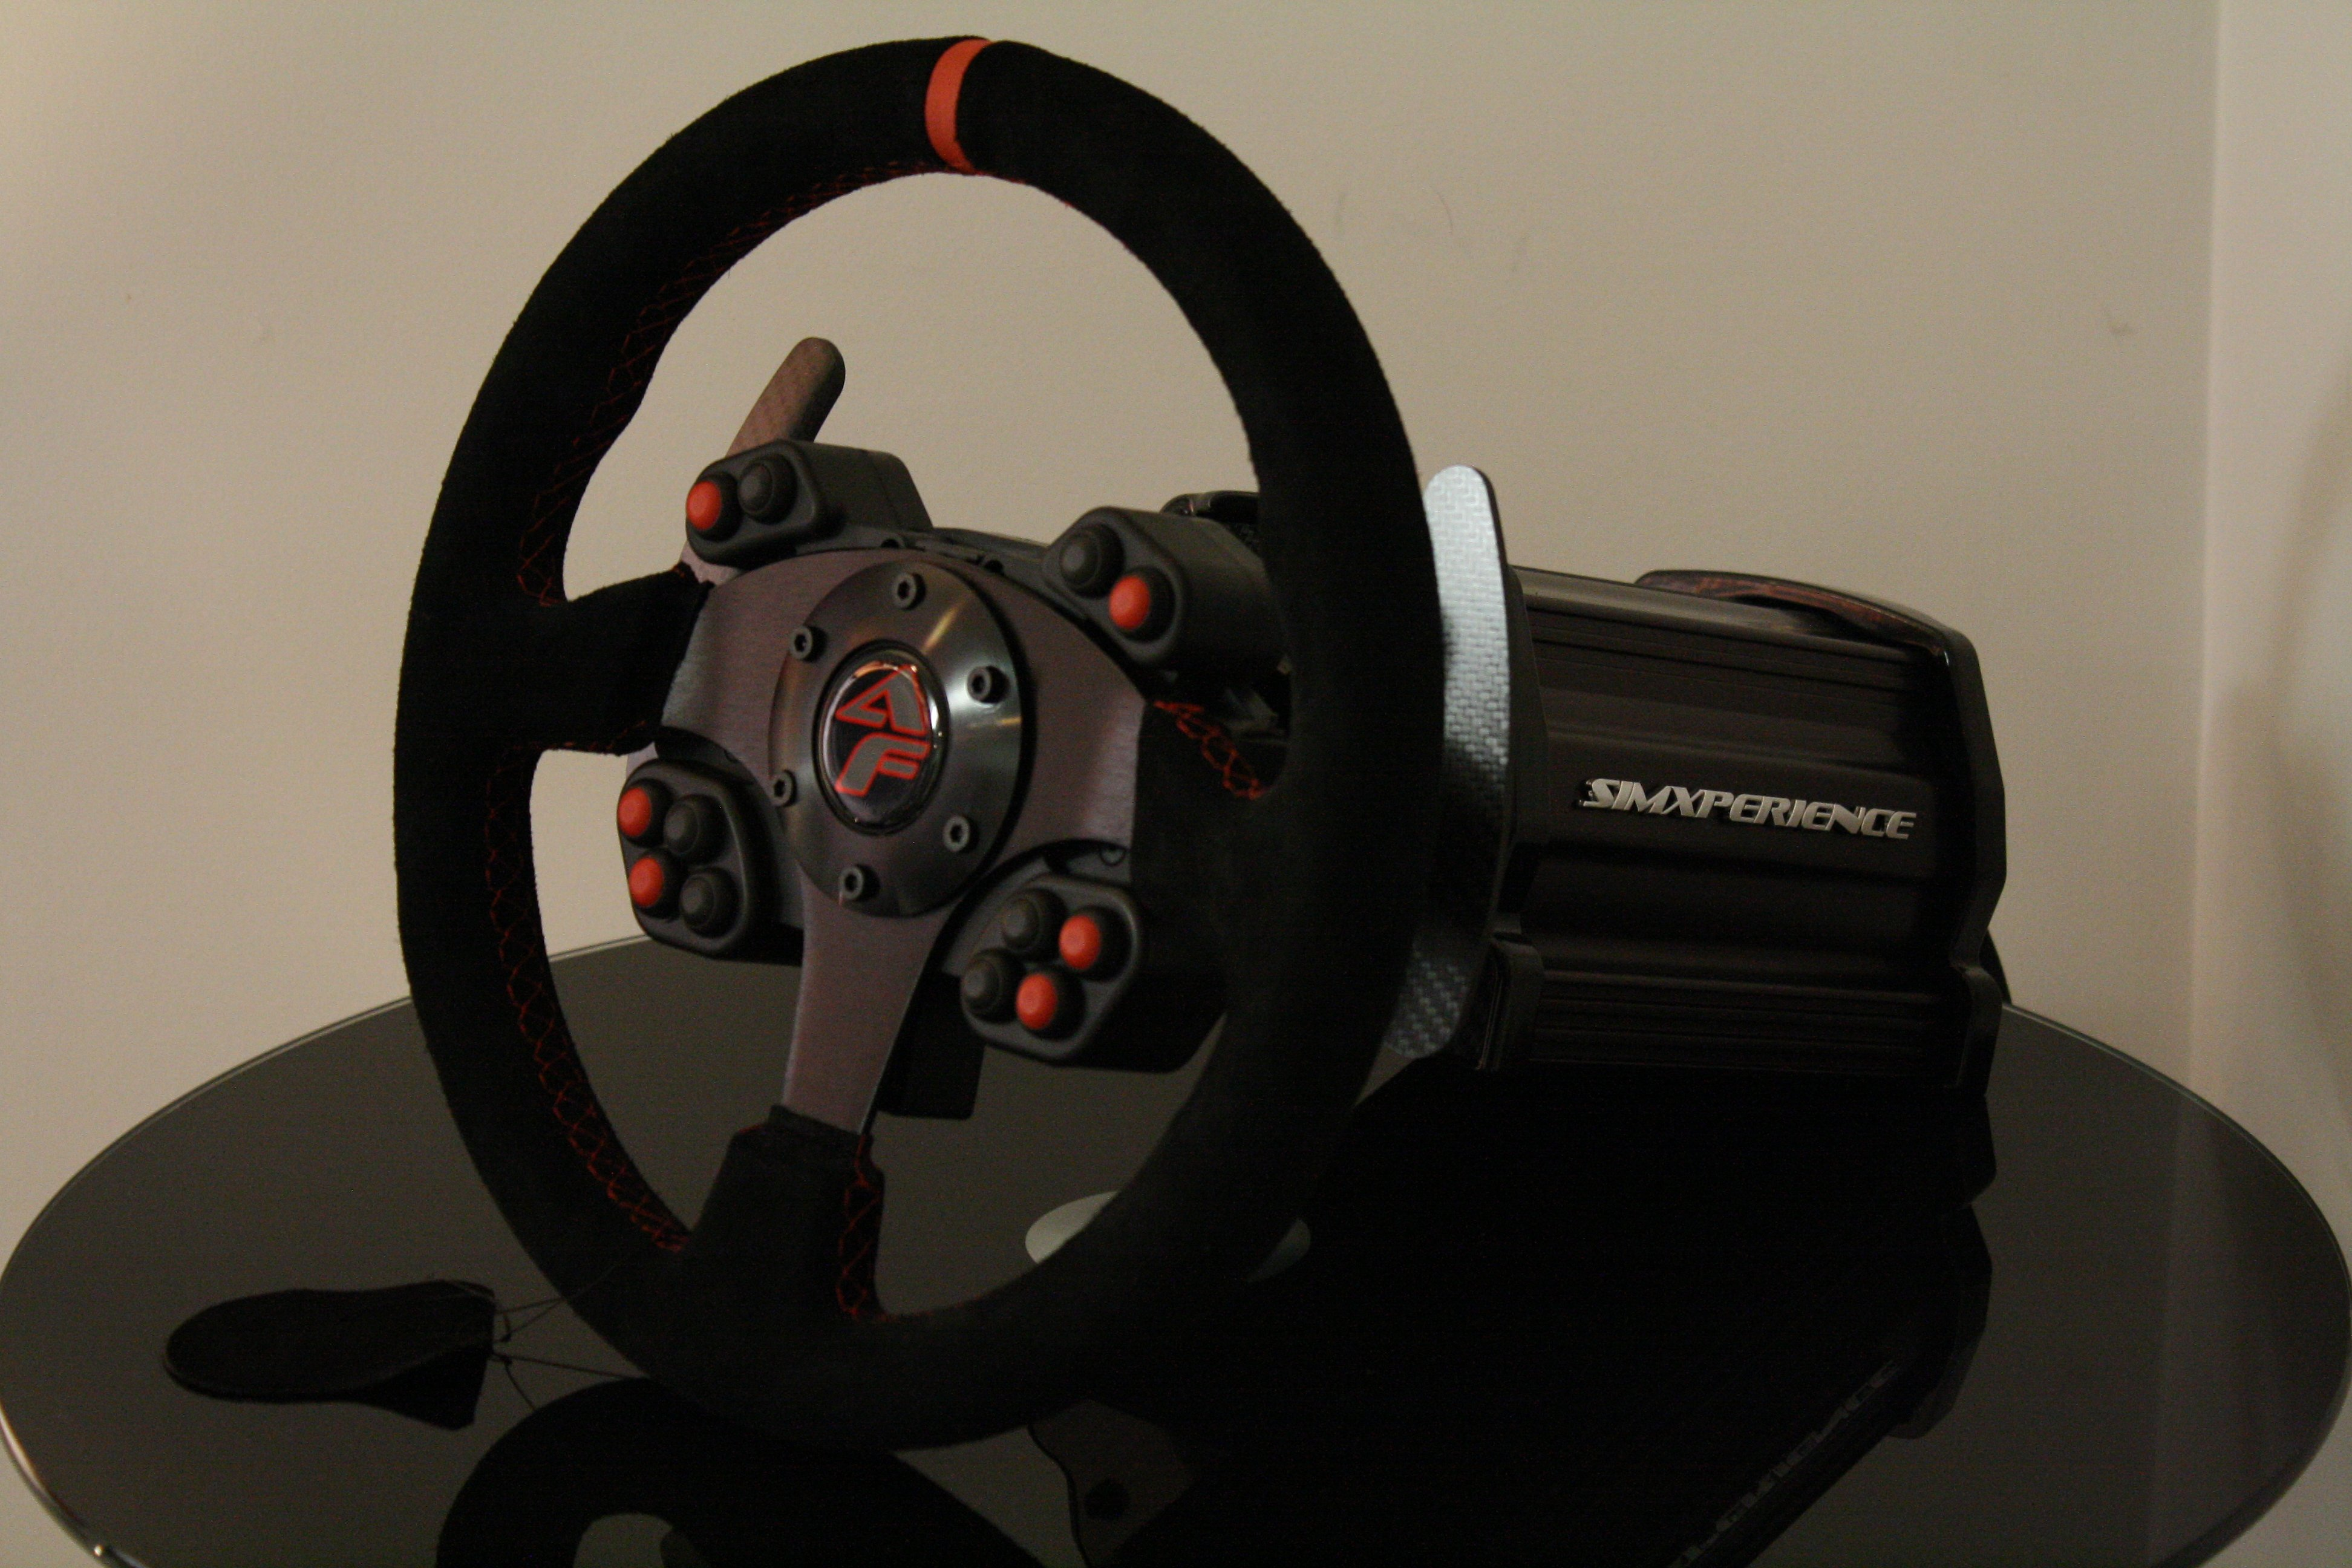 SimXperience AccuForce Pro Now Available for Mass Purchase